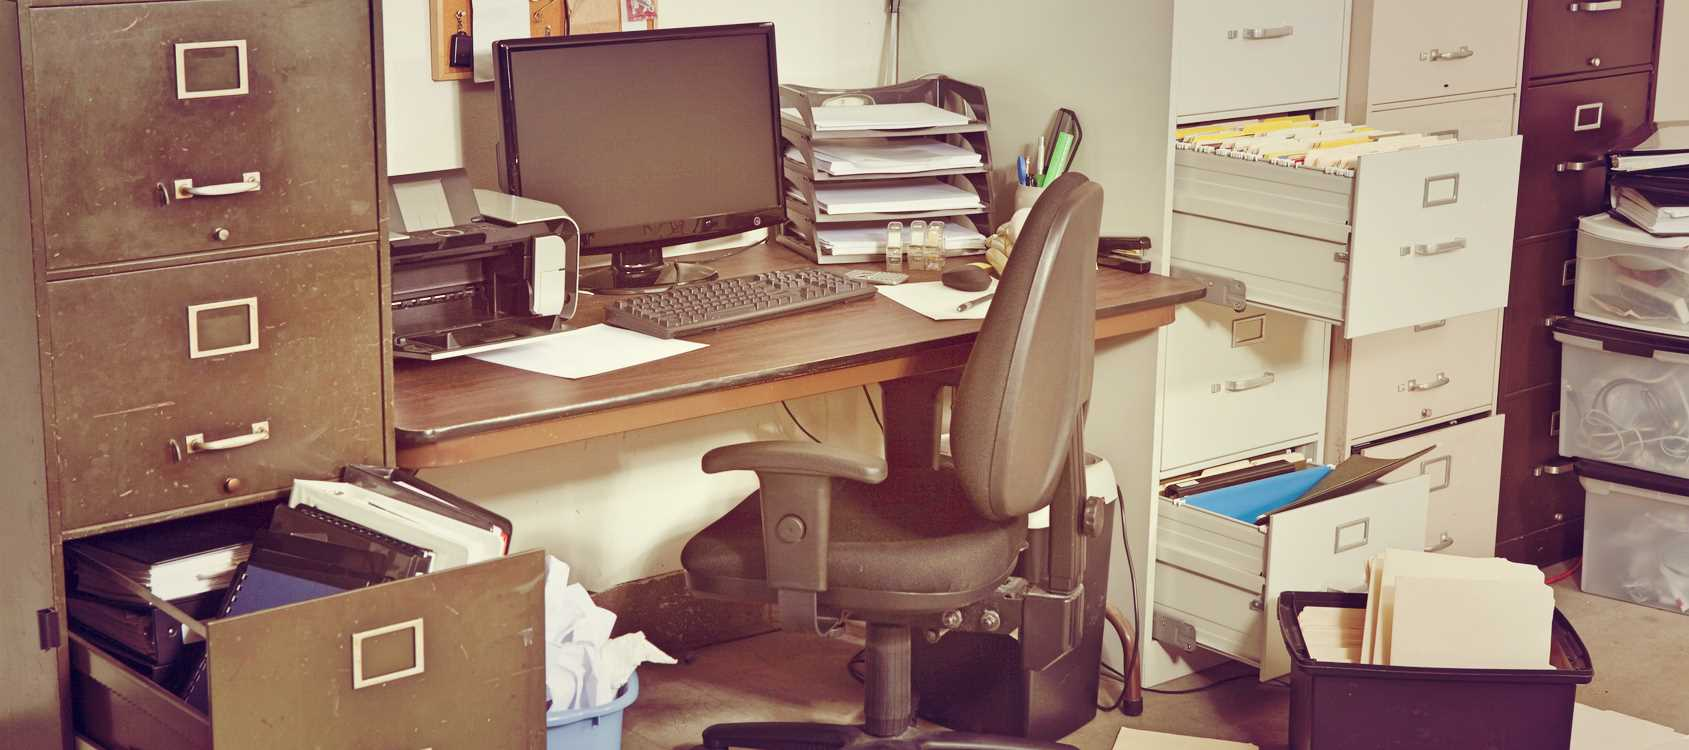 Office Clean Out-Savannah Dumpster Rental & Junk Removal Services-We Offer Residential and Commercial Dumpster Removal Services, Portable Toilet Services, Dumpster Rentals, Bulk Trash, Demolition Removal, Junk Hauling, Rubbish Removal, Waste Containers, Debris Removal, 20 & 30 Yard Container Rentals, and much more!